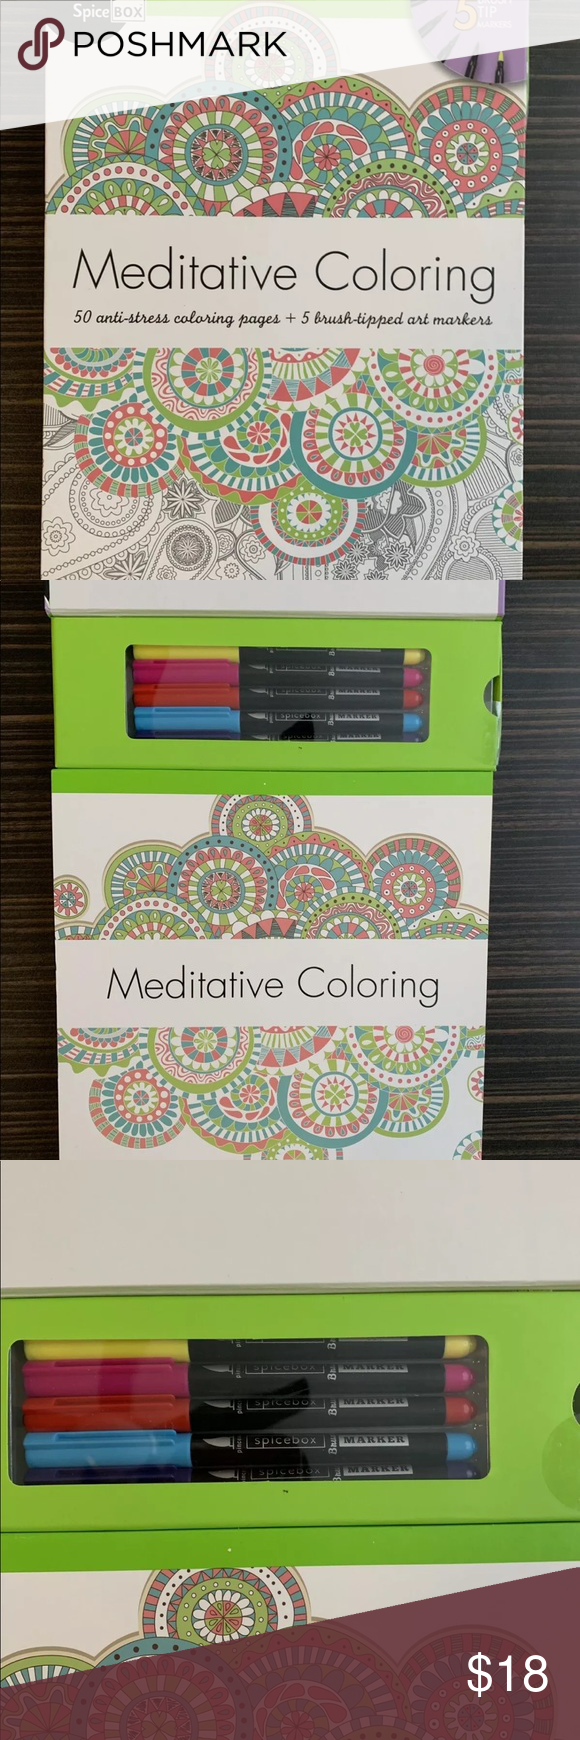 Spicebox Meditative Coloring Book Anti Stress Spicebox Anti Stress Coloring Book Over 50 Pag Meditative Coloring Stress Coloring Book Anti Stress Coloring Book